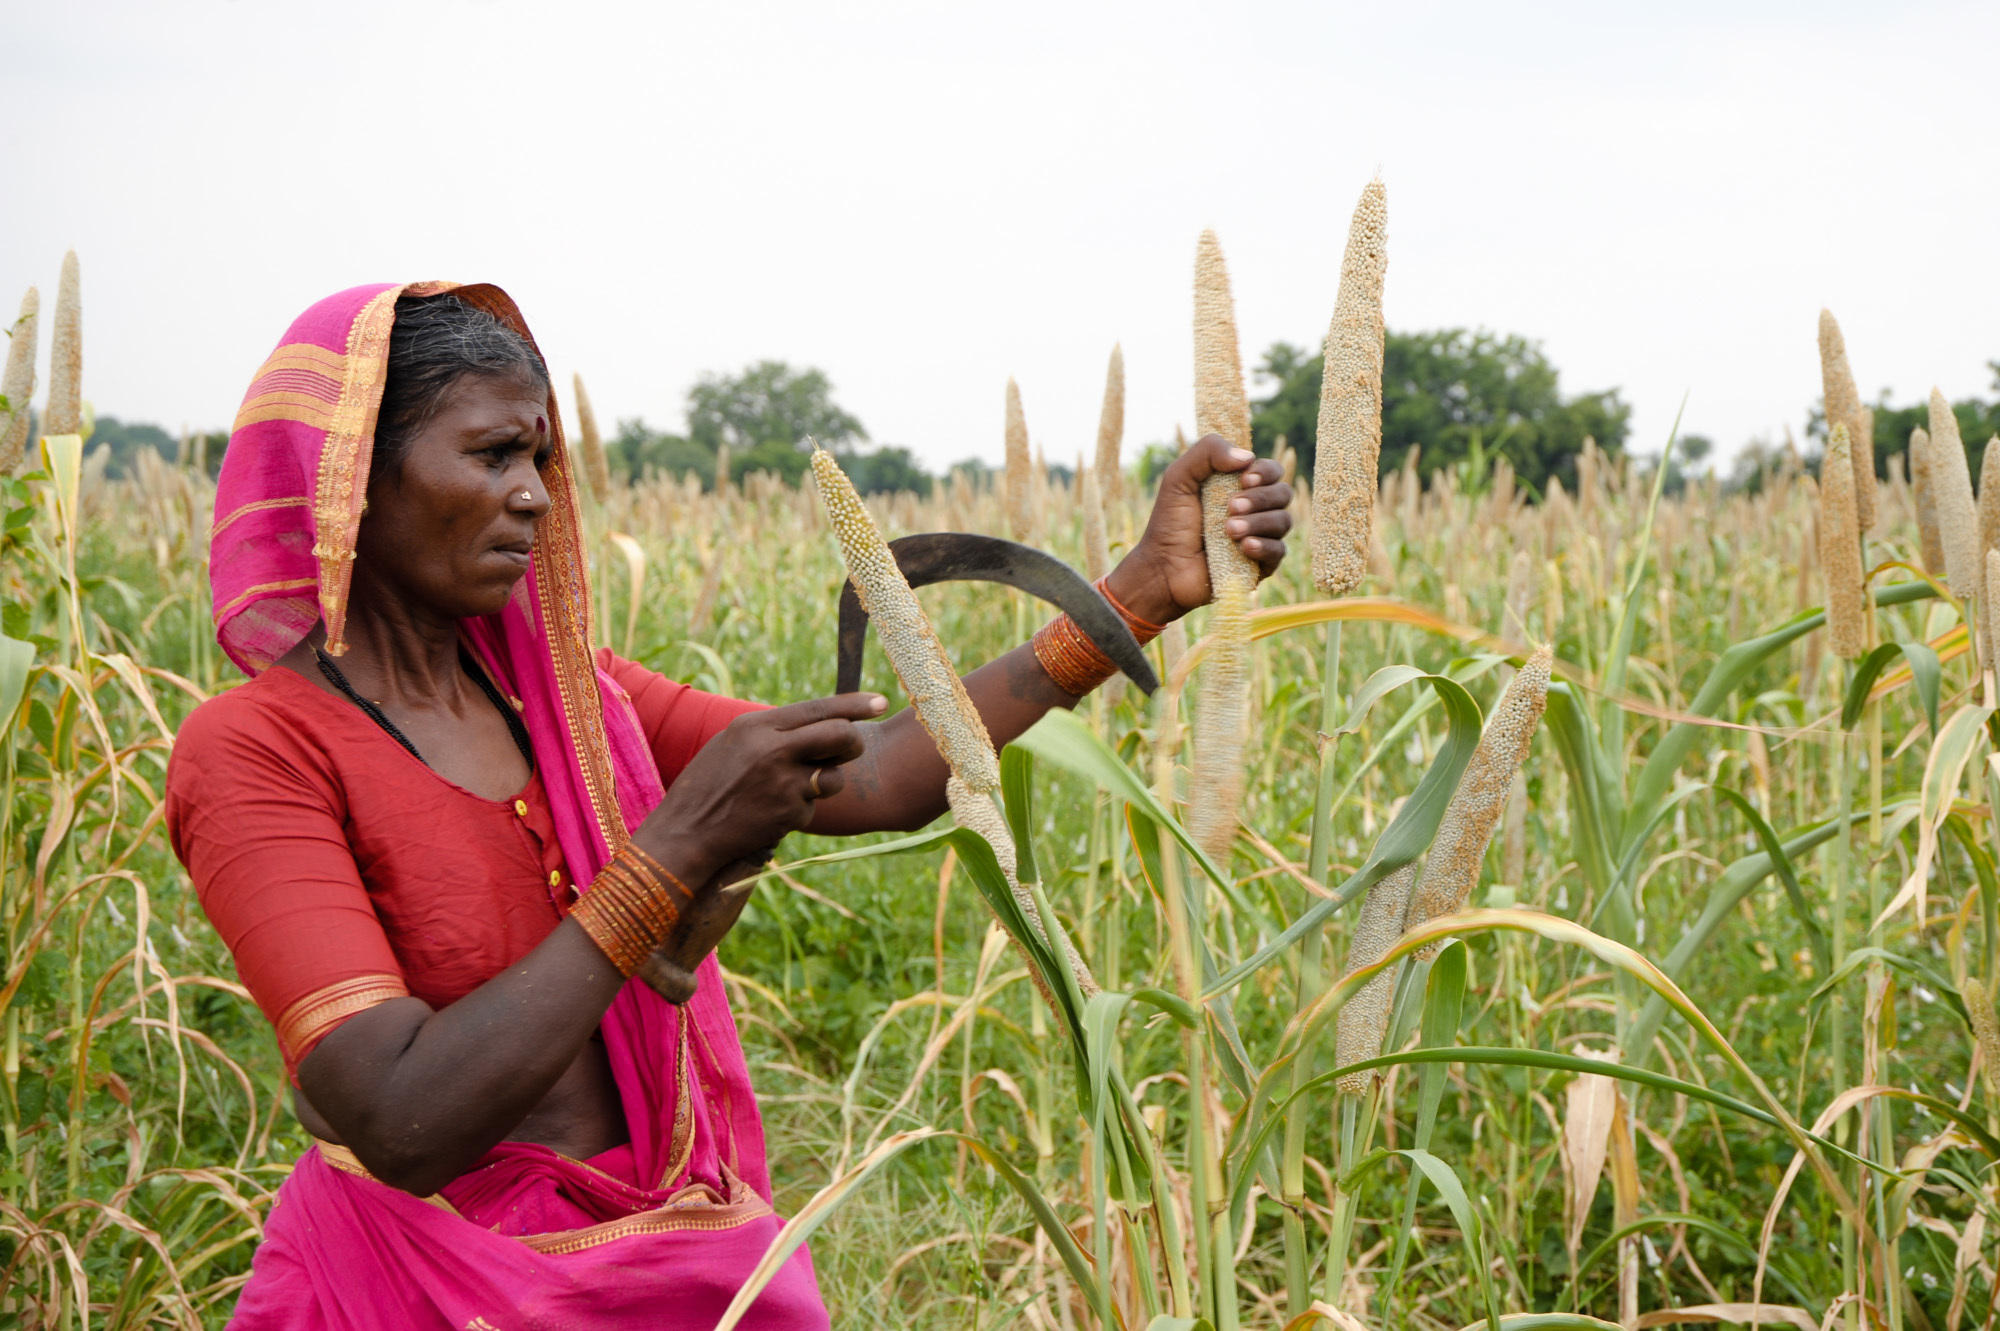 farmer hindu single women For chinese women, marriage depends on right 'bride price' china's one-child only policy and historic preference for.